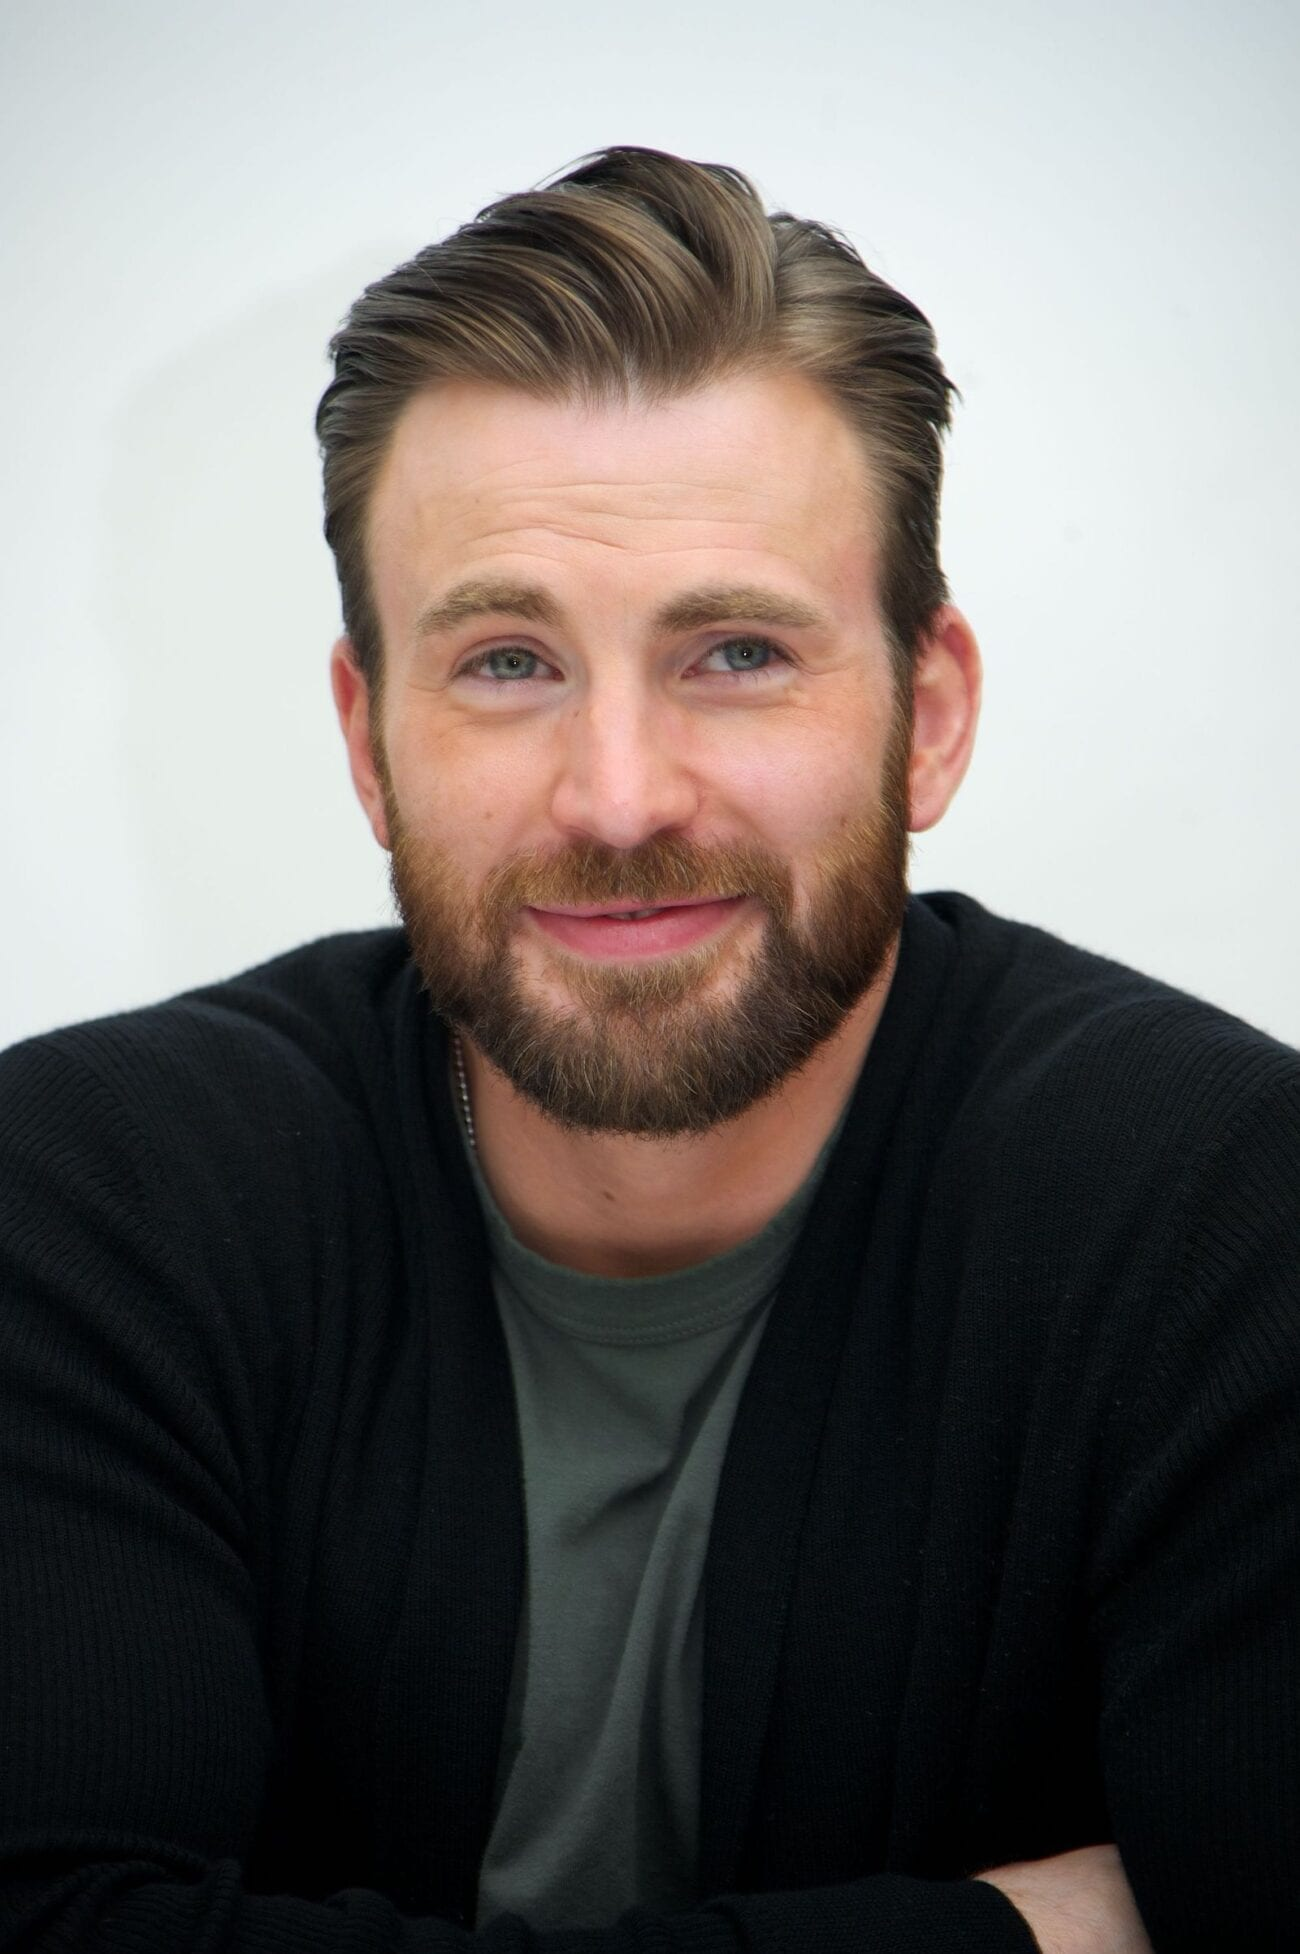 It looks like playing a beloved MCU superhero has a pretty good payday. Check out Chris Evans' net worth right here.